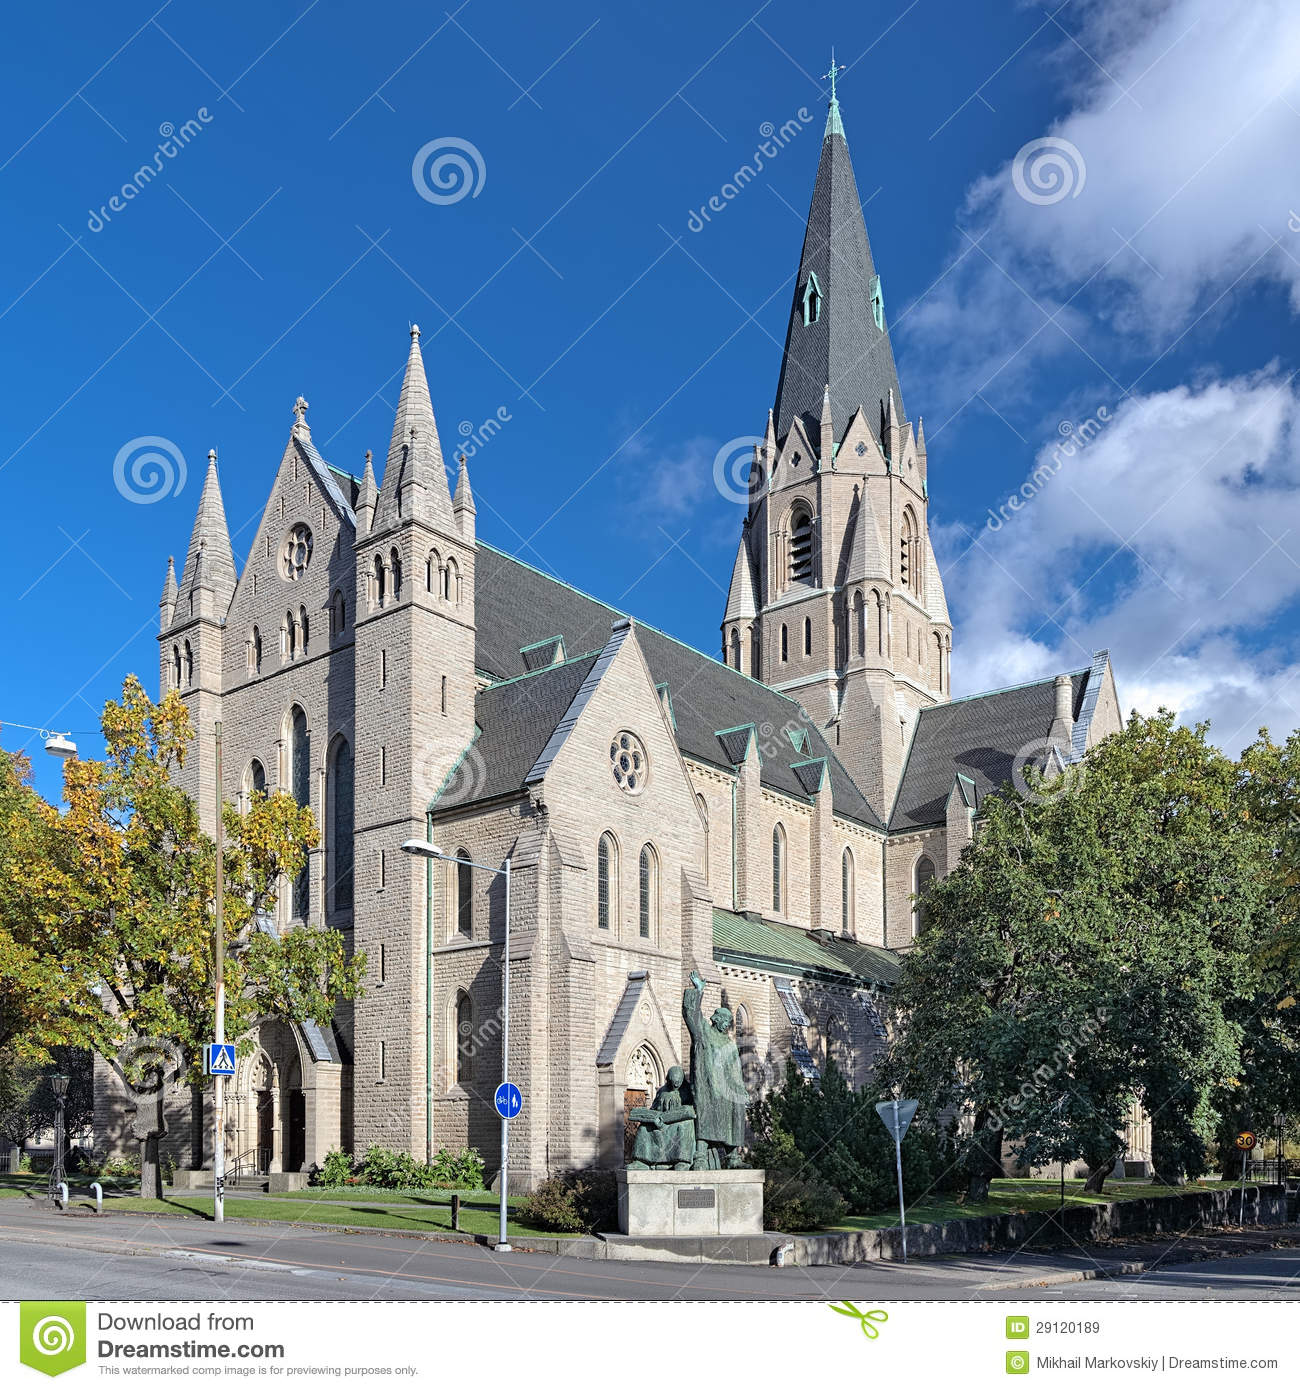 Olaus Petri Church In Orebro, Sweden Royalty Free Stock Images.